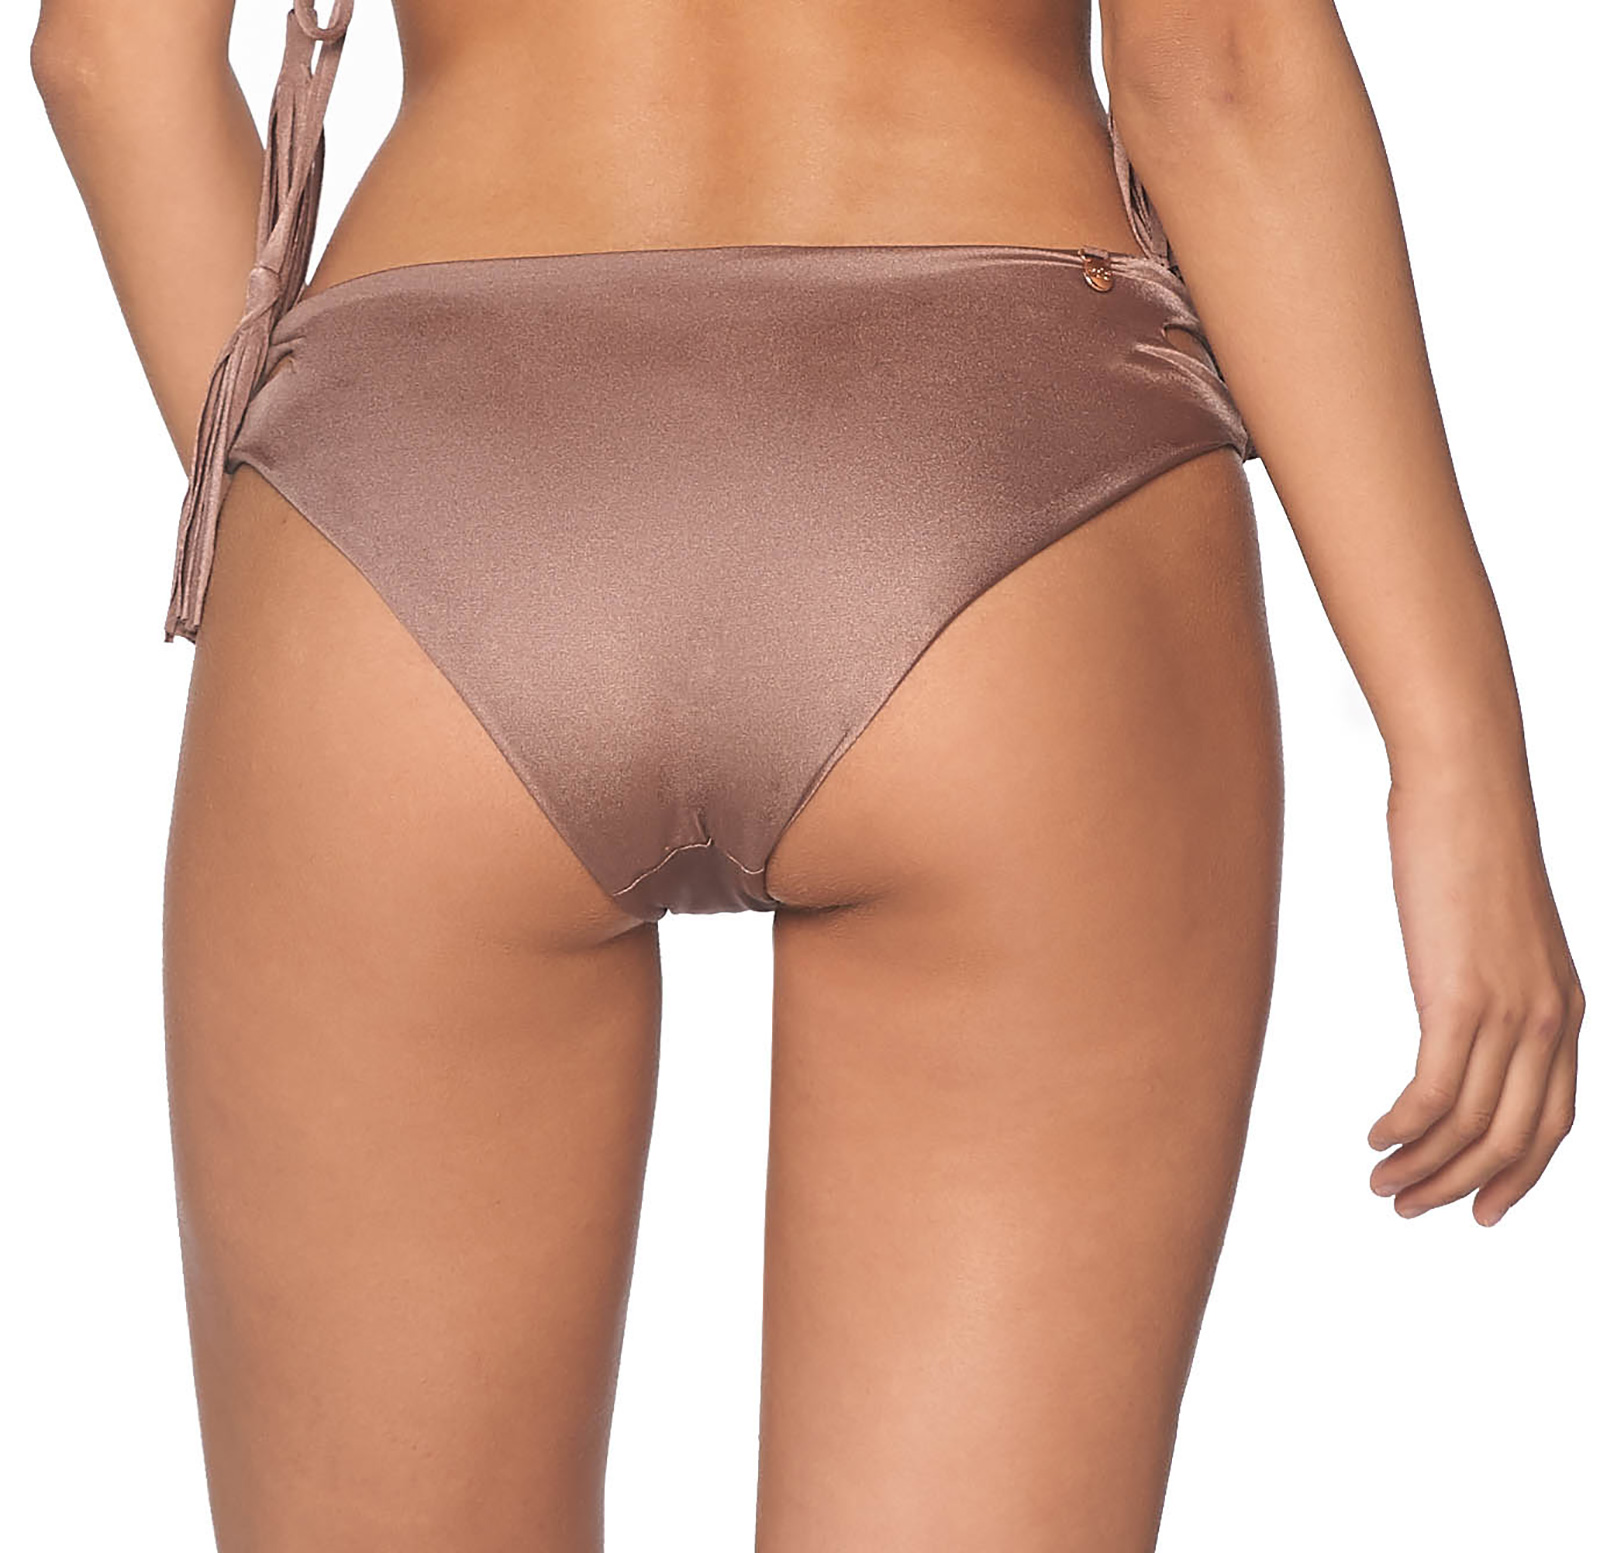 fbe81bdf35859 ... Iridescent taupe bikini bottom with side cutout - BOTTOM PACIFIC SPARKLY  TAUPE